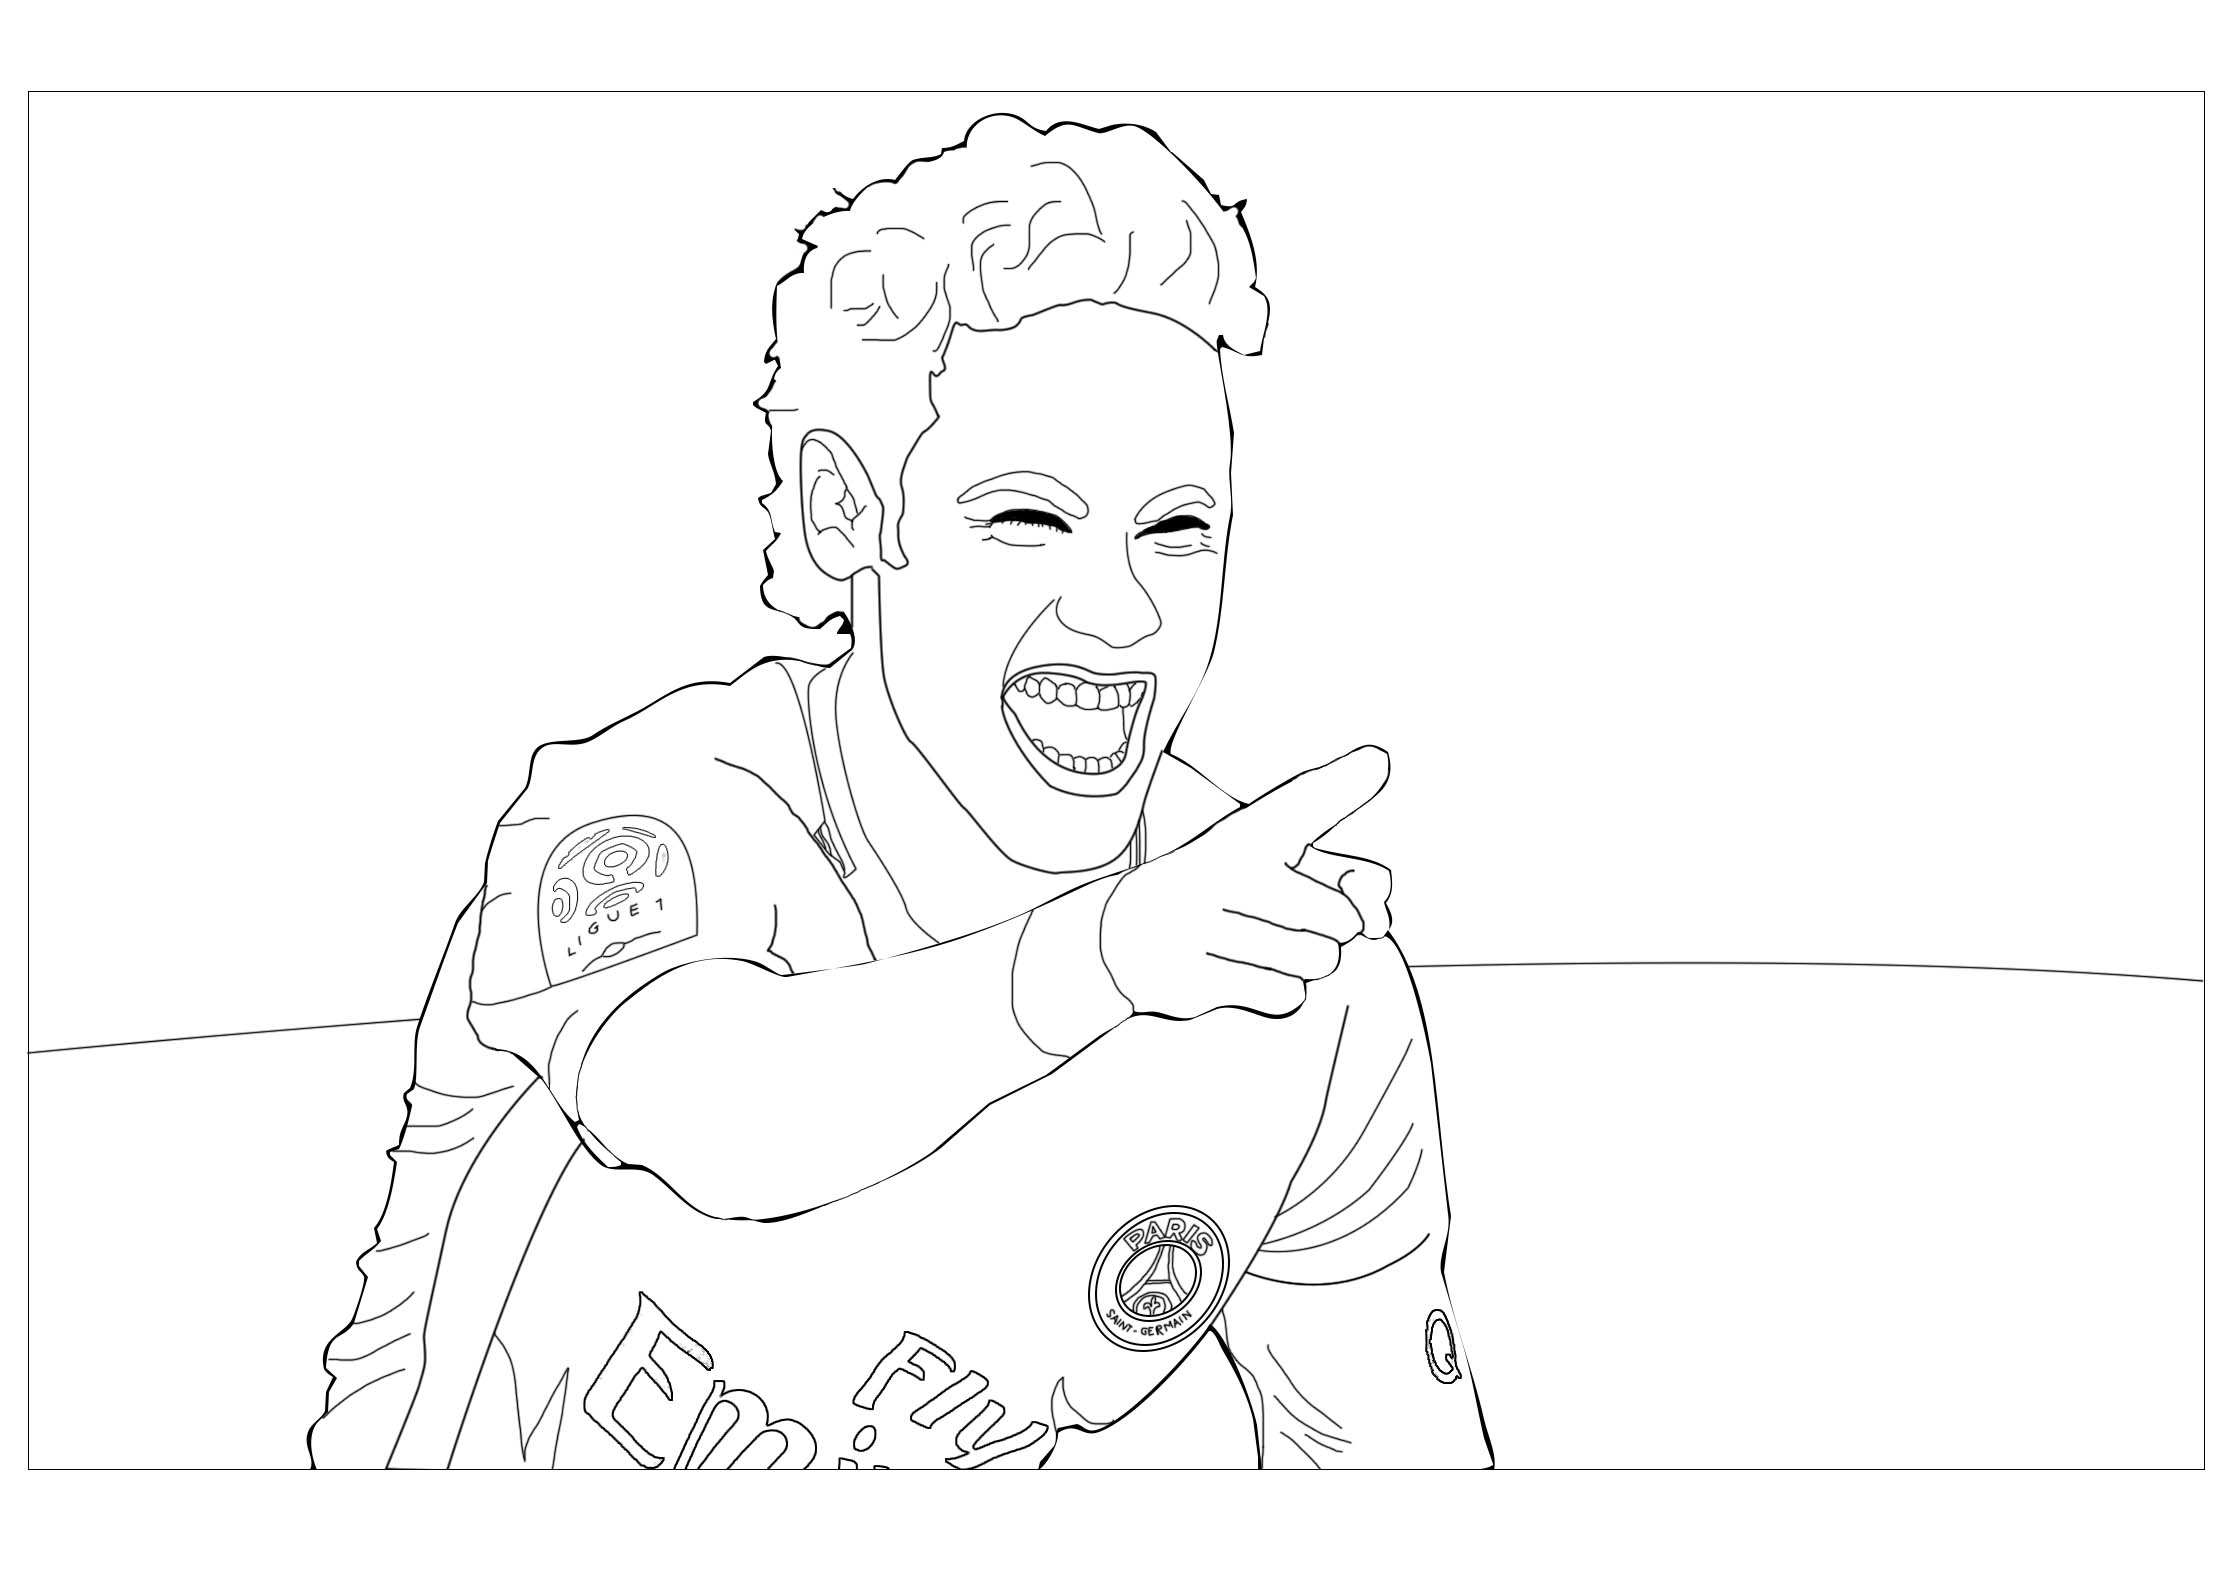 Soccer coloring page with few details for kids